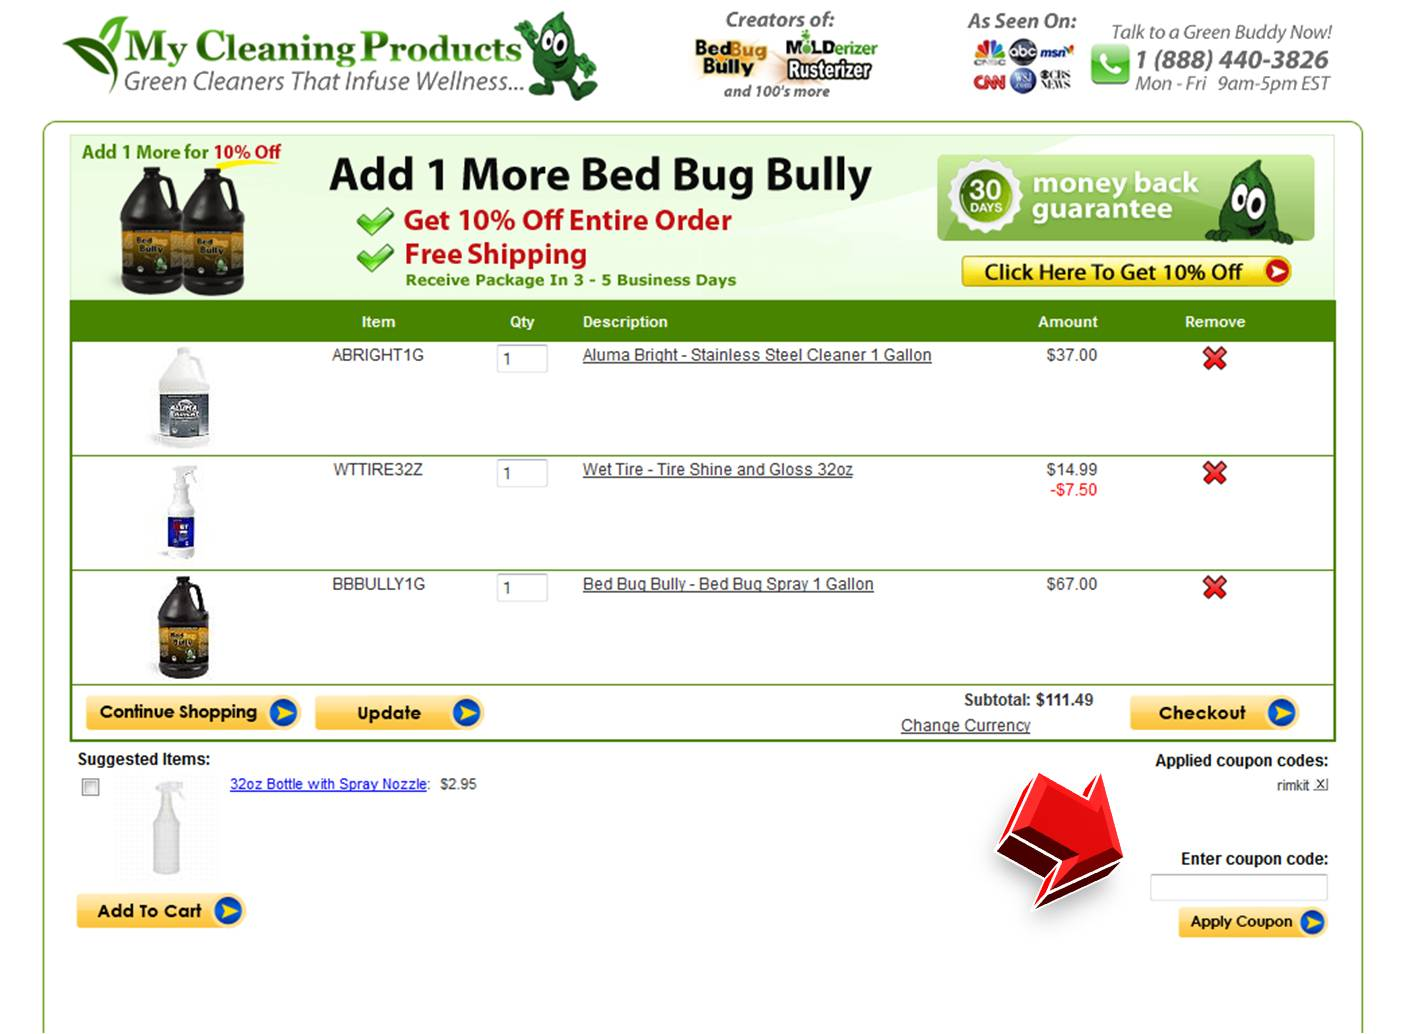 Mw cleaners comforter coupon